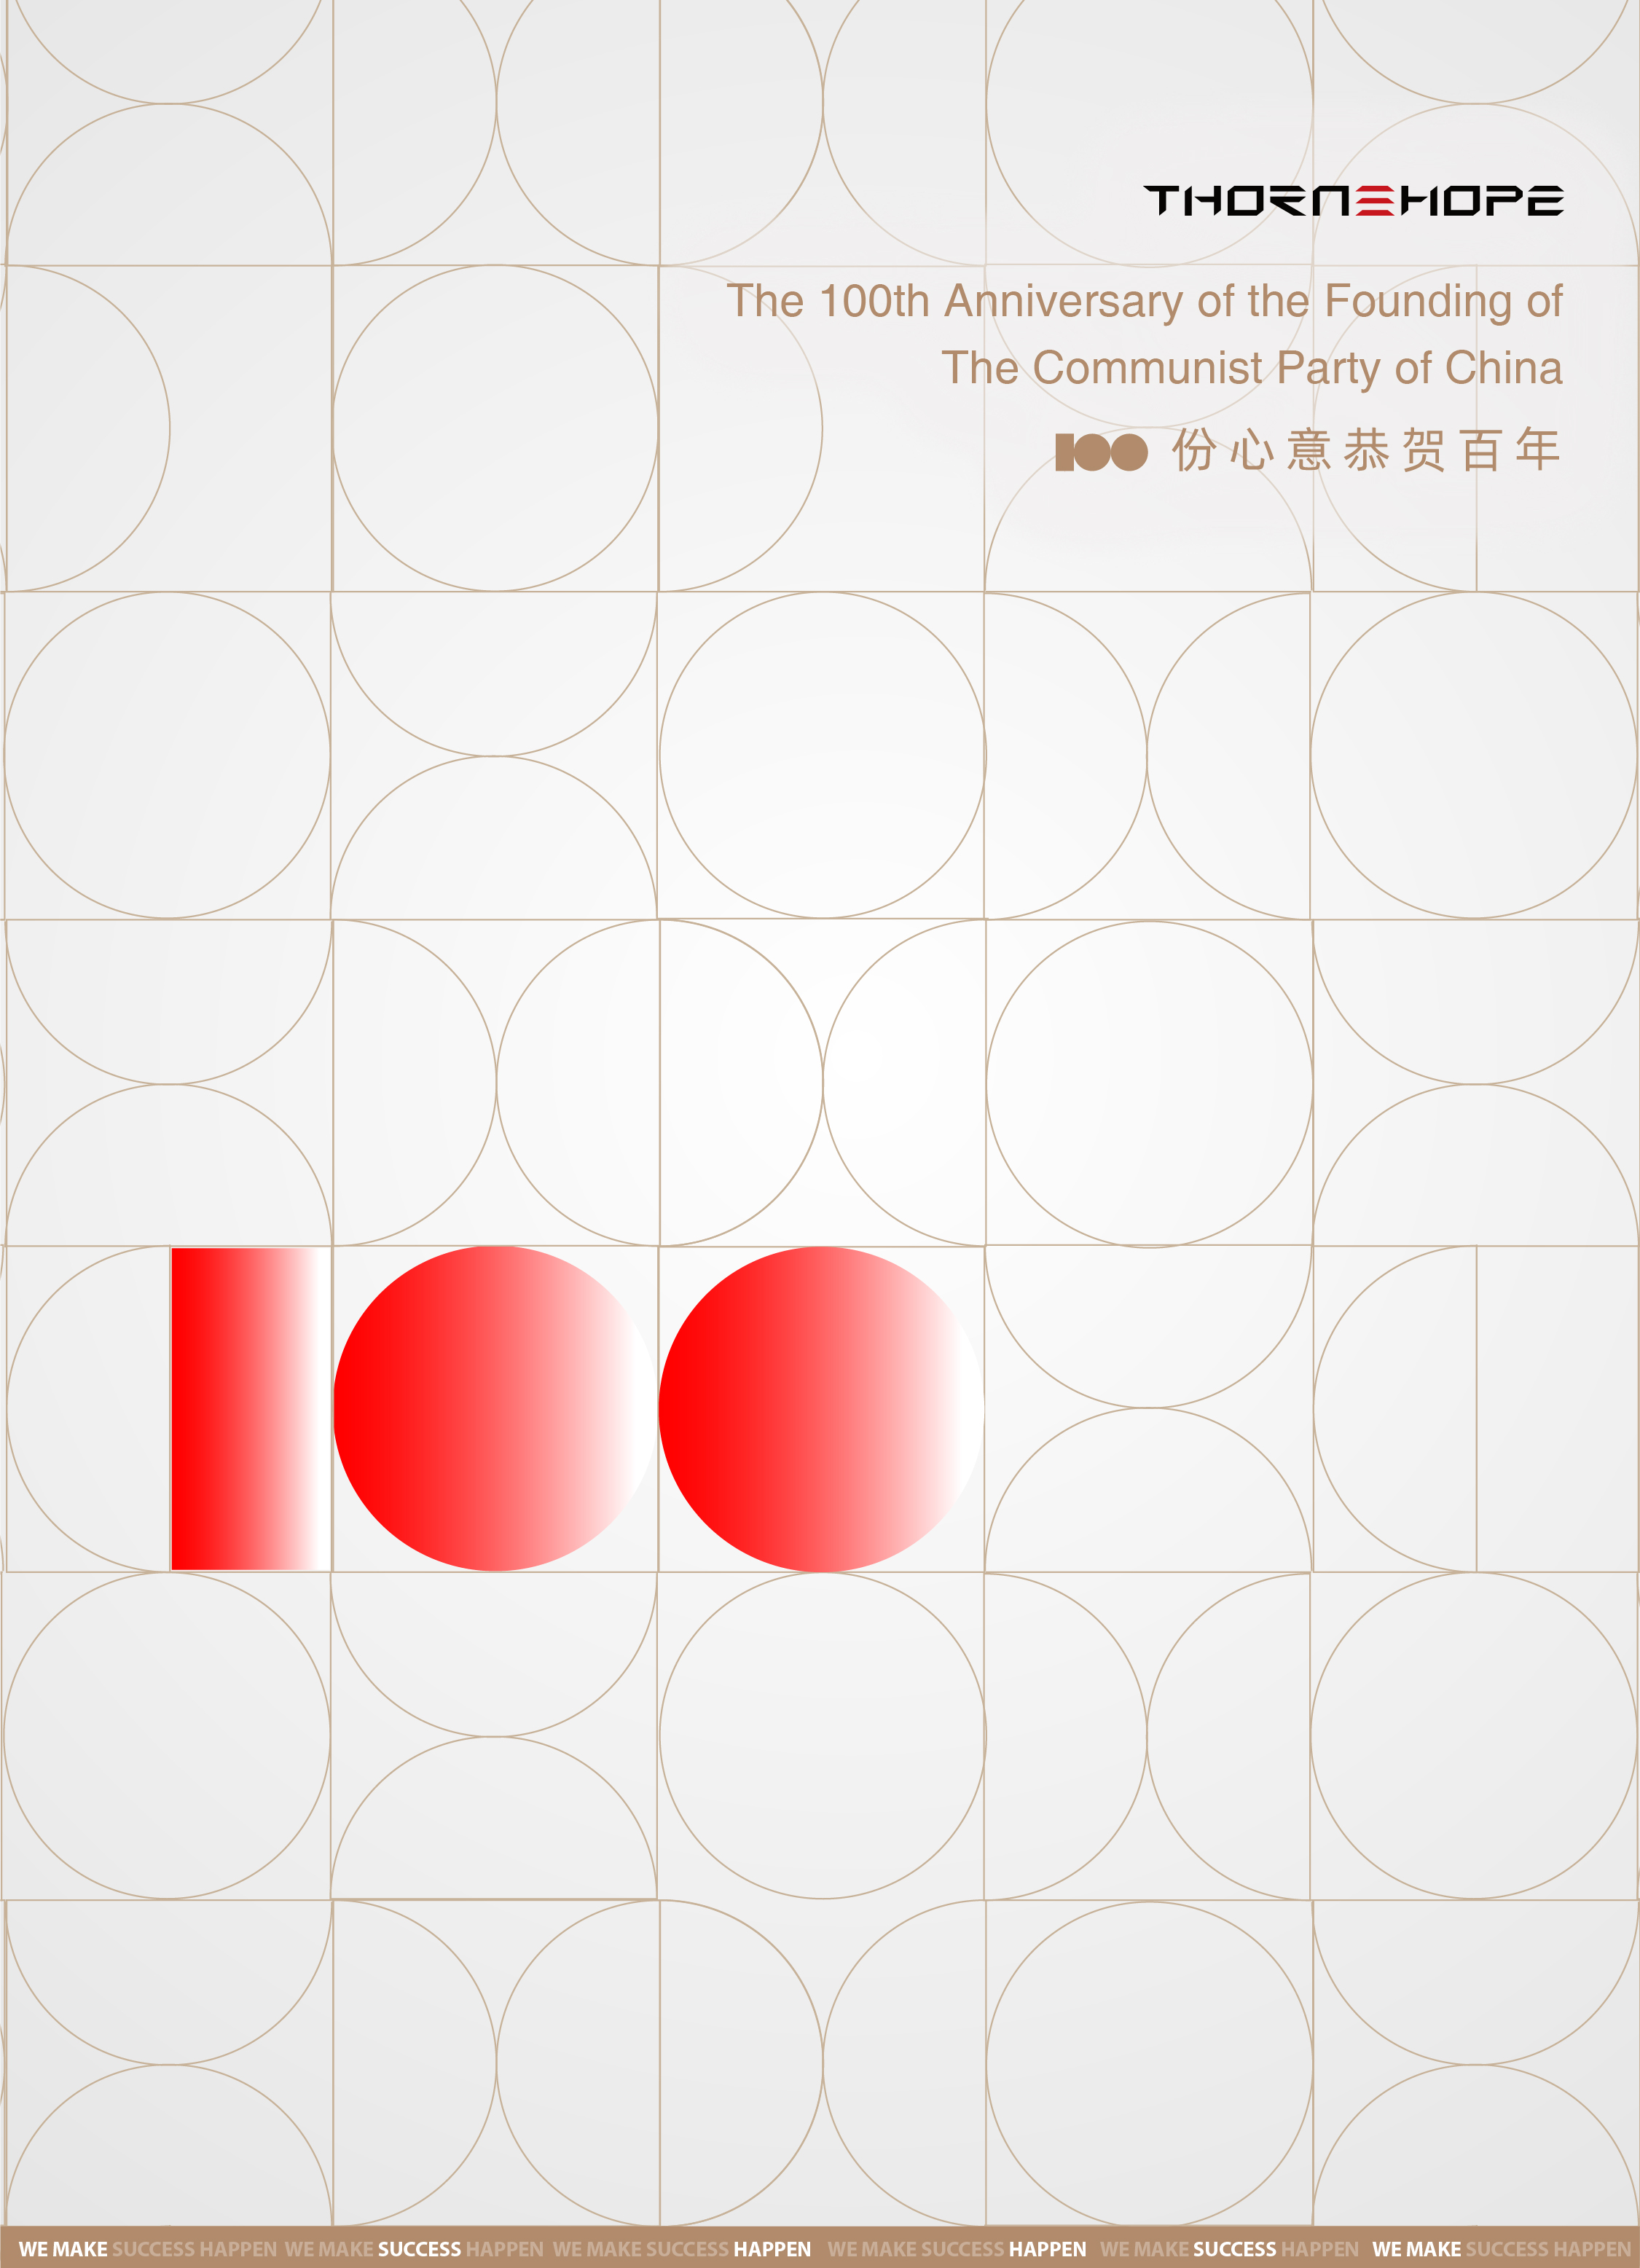 CENTENARY CELEBRATION OF FOUNDING OF THE COMMUNIST PARTY  OF CHINA